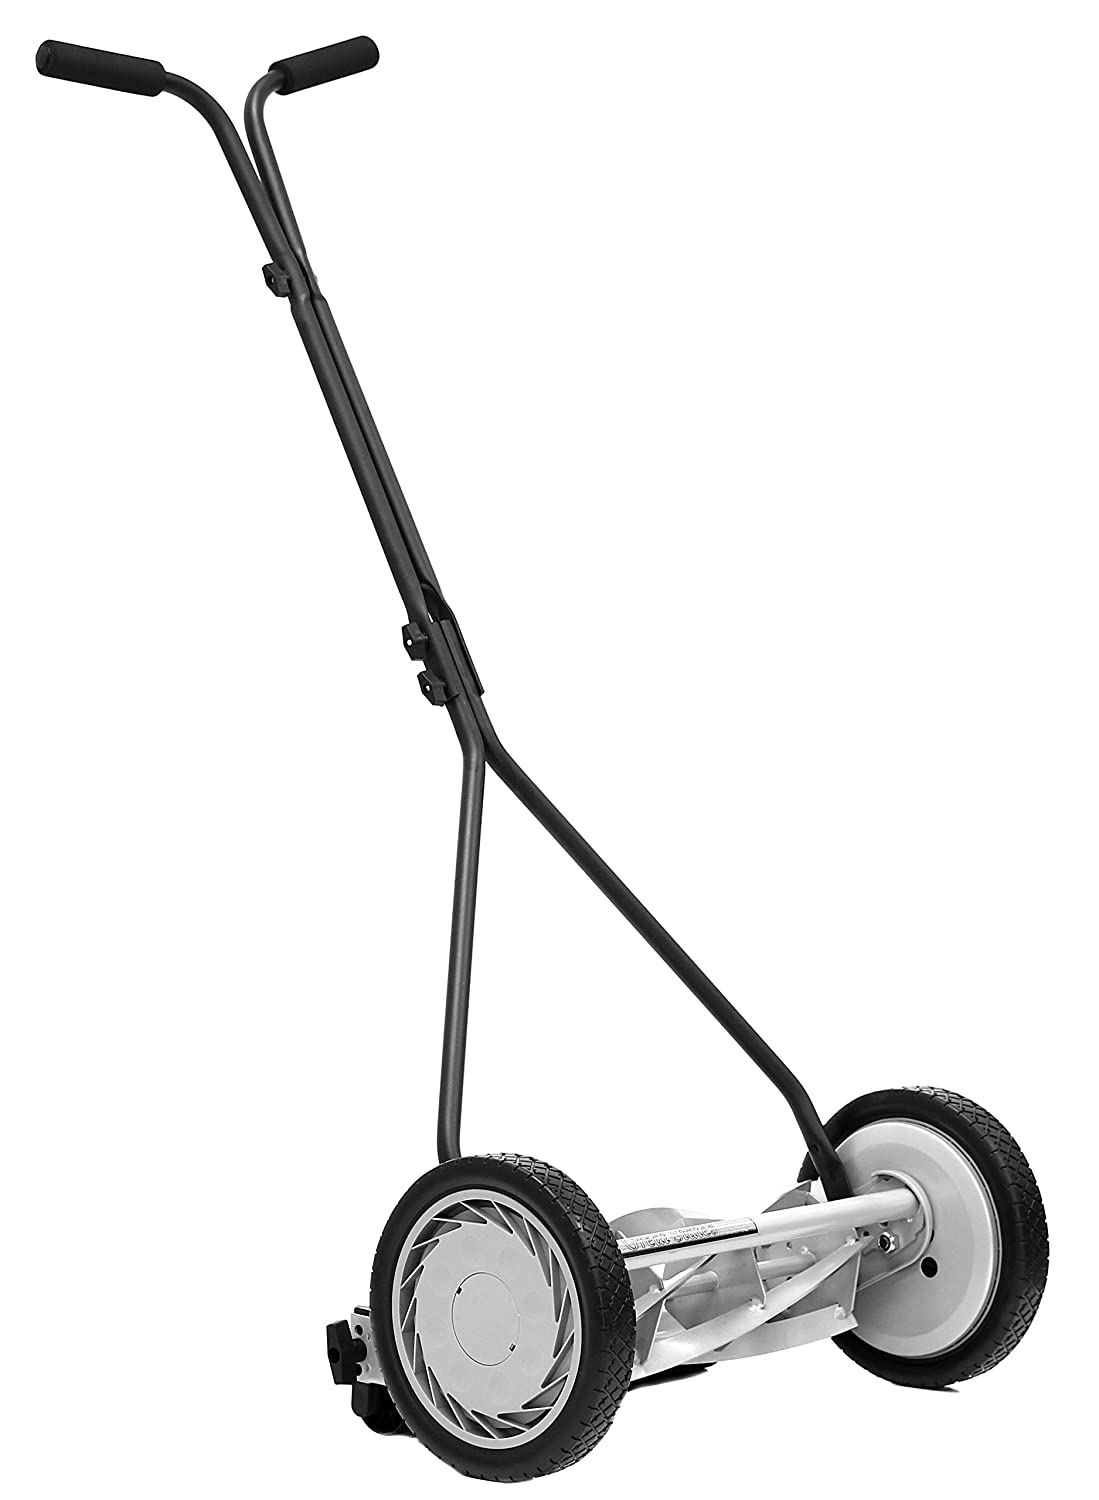 Best lawn mower - Great States Model 304-14 Five Blade 14 Inch Push Reel Lawnmower